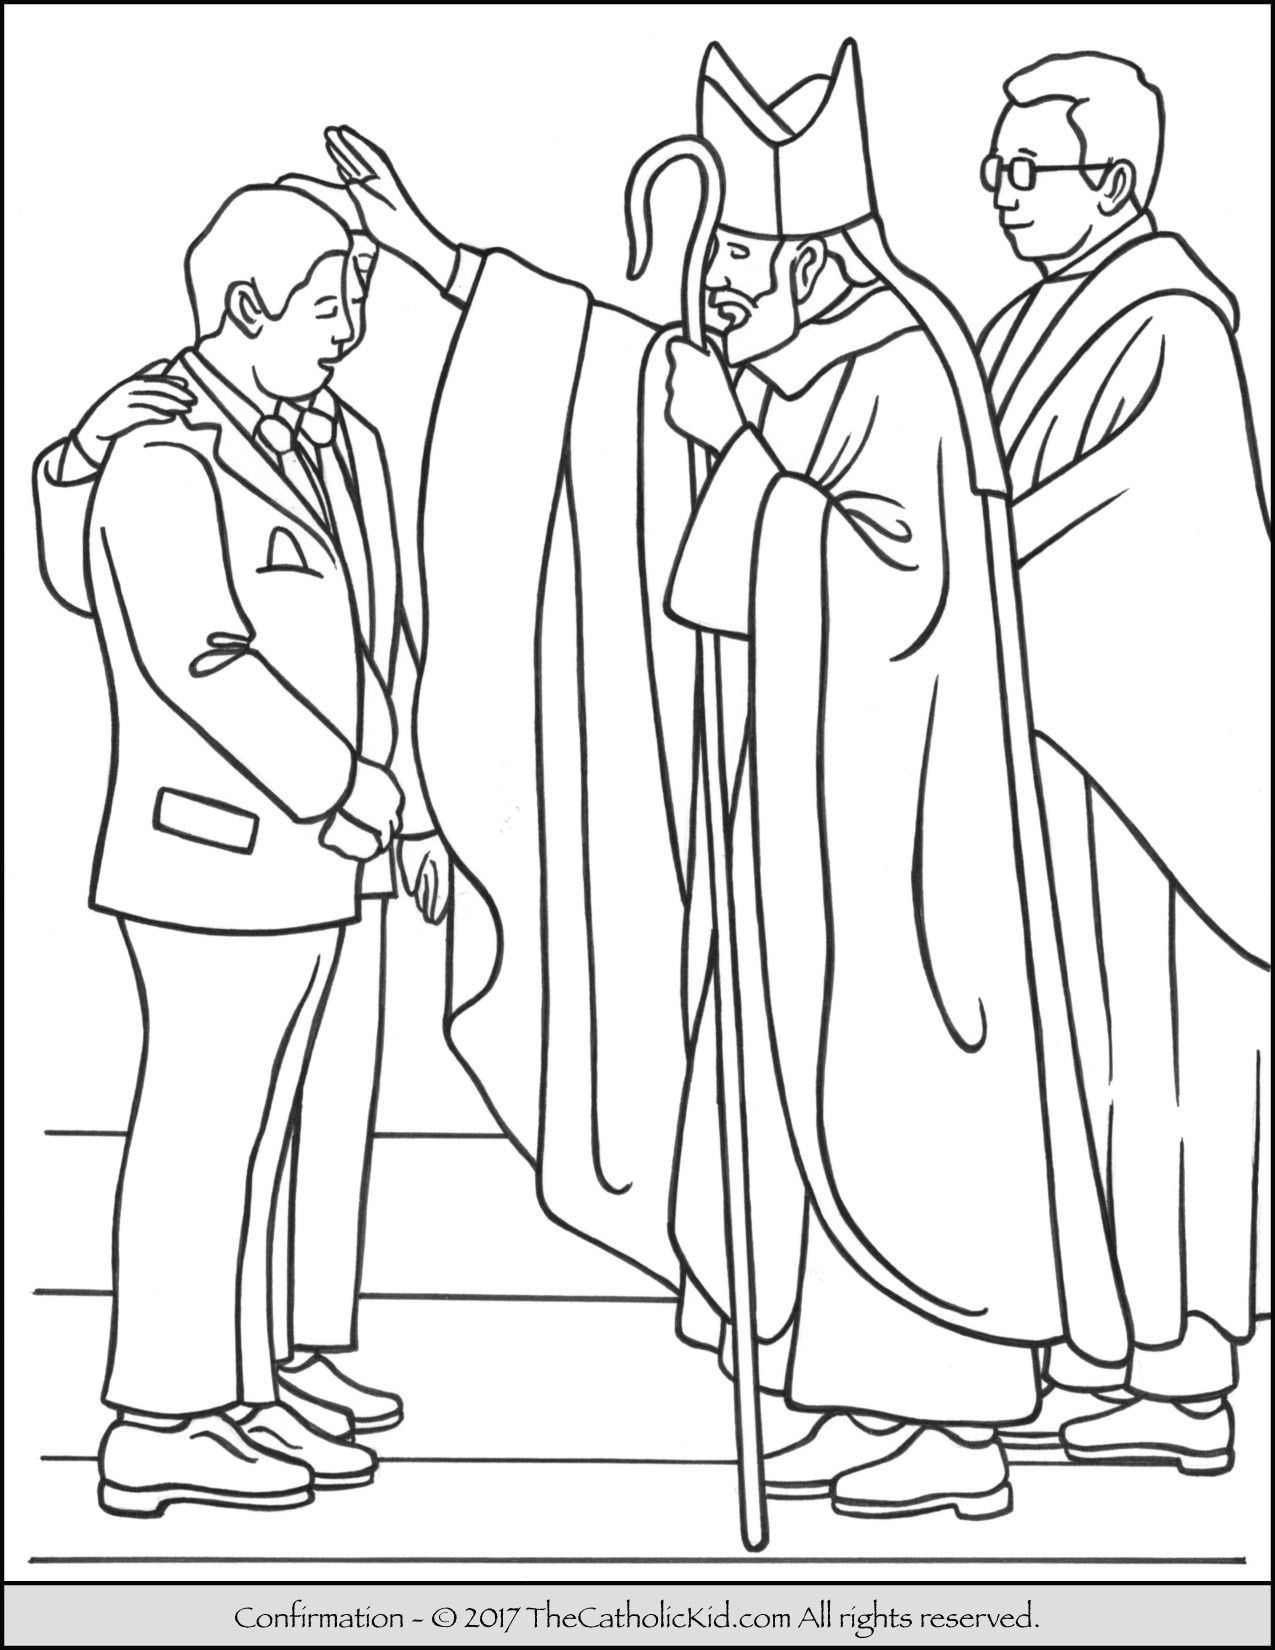 Sacrament Of Confirmation Coloring Page. | Sacrament Coloring Pages - Free Catholic Coloring Pages Printables